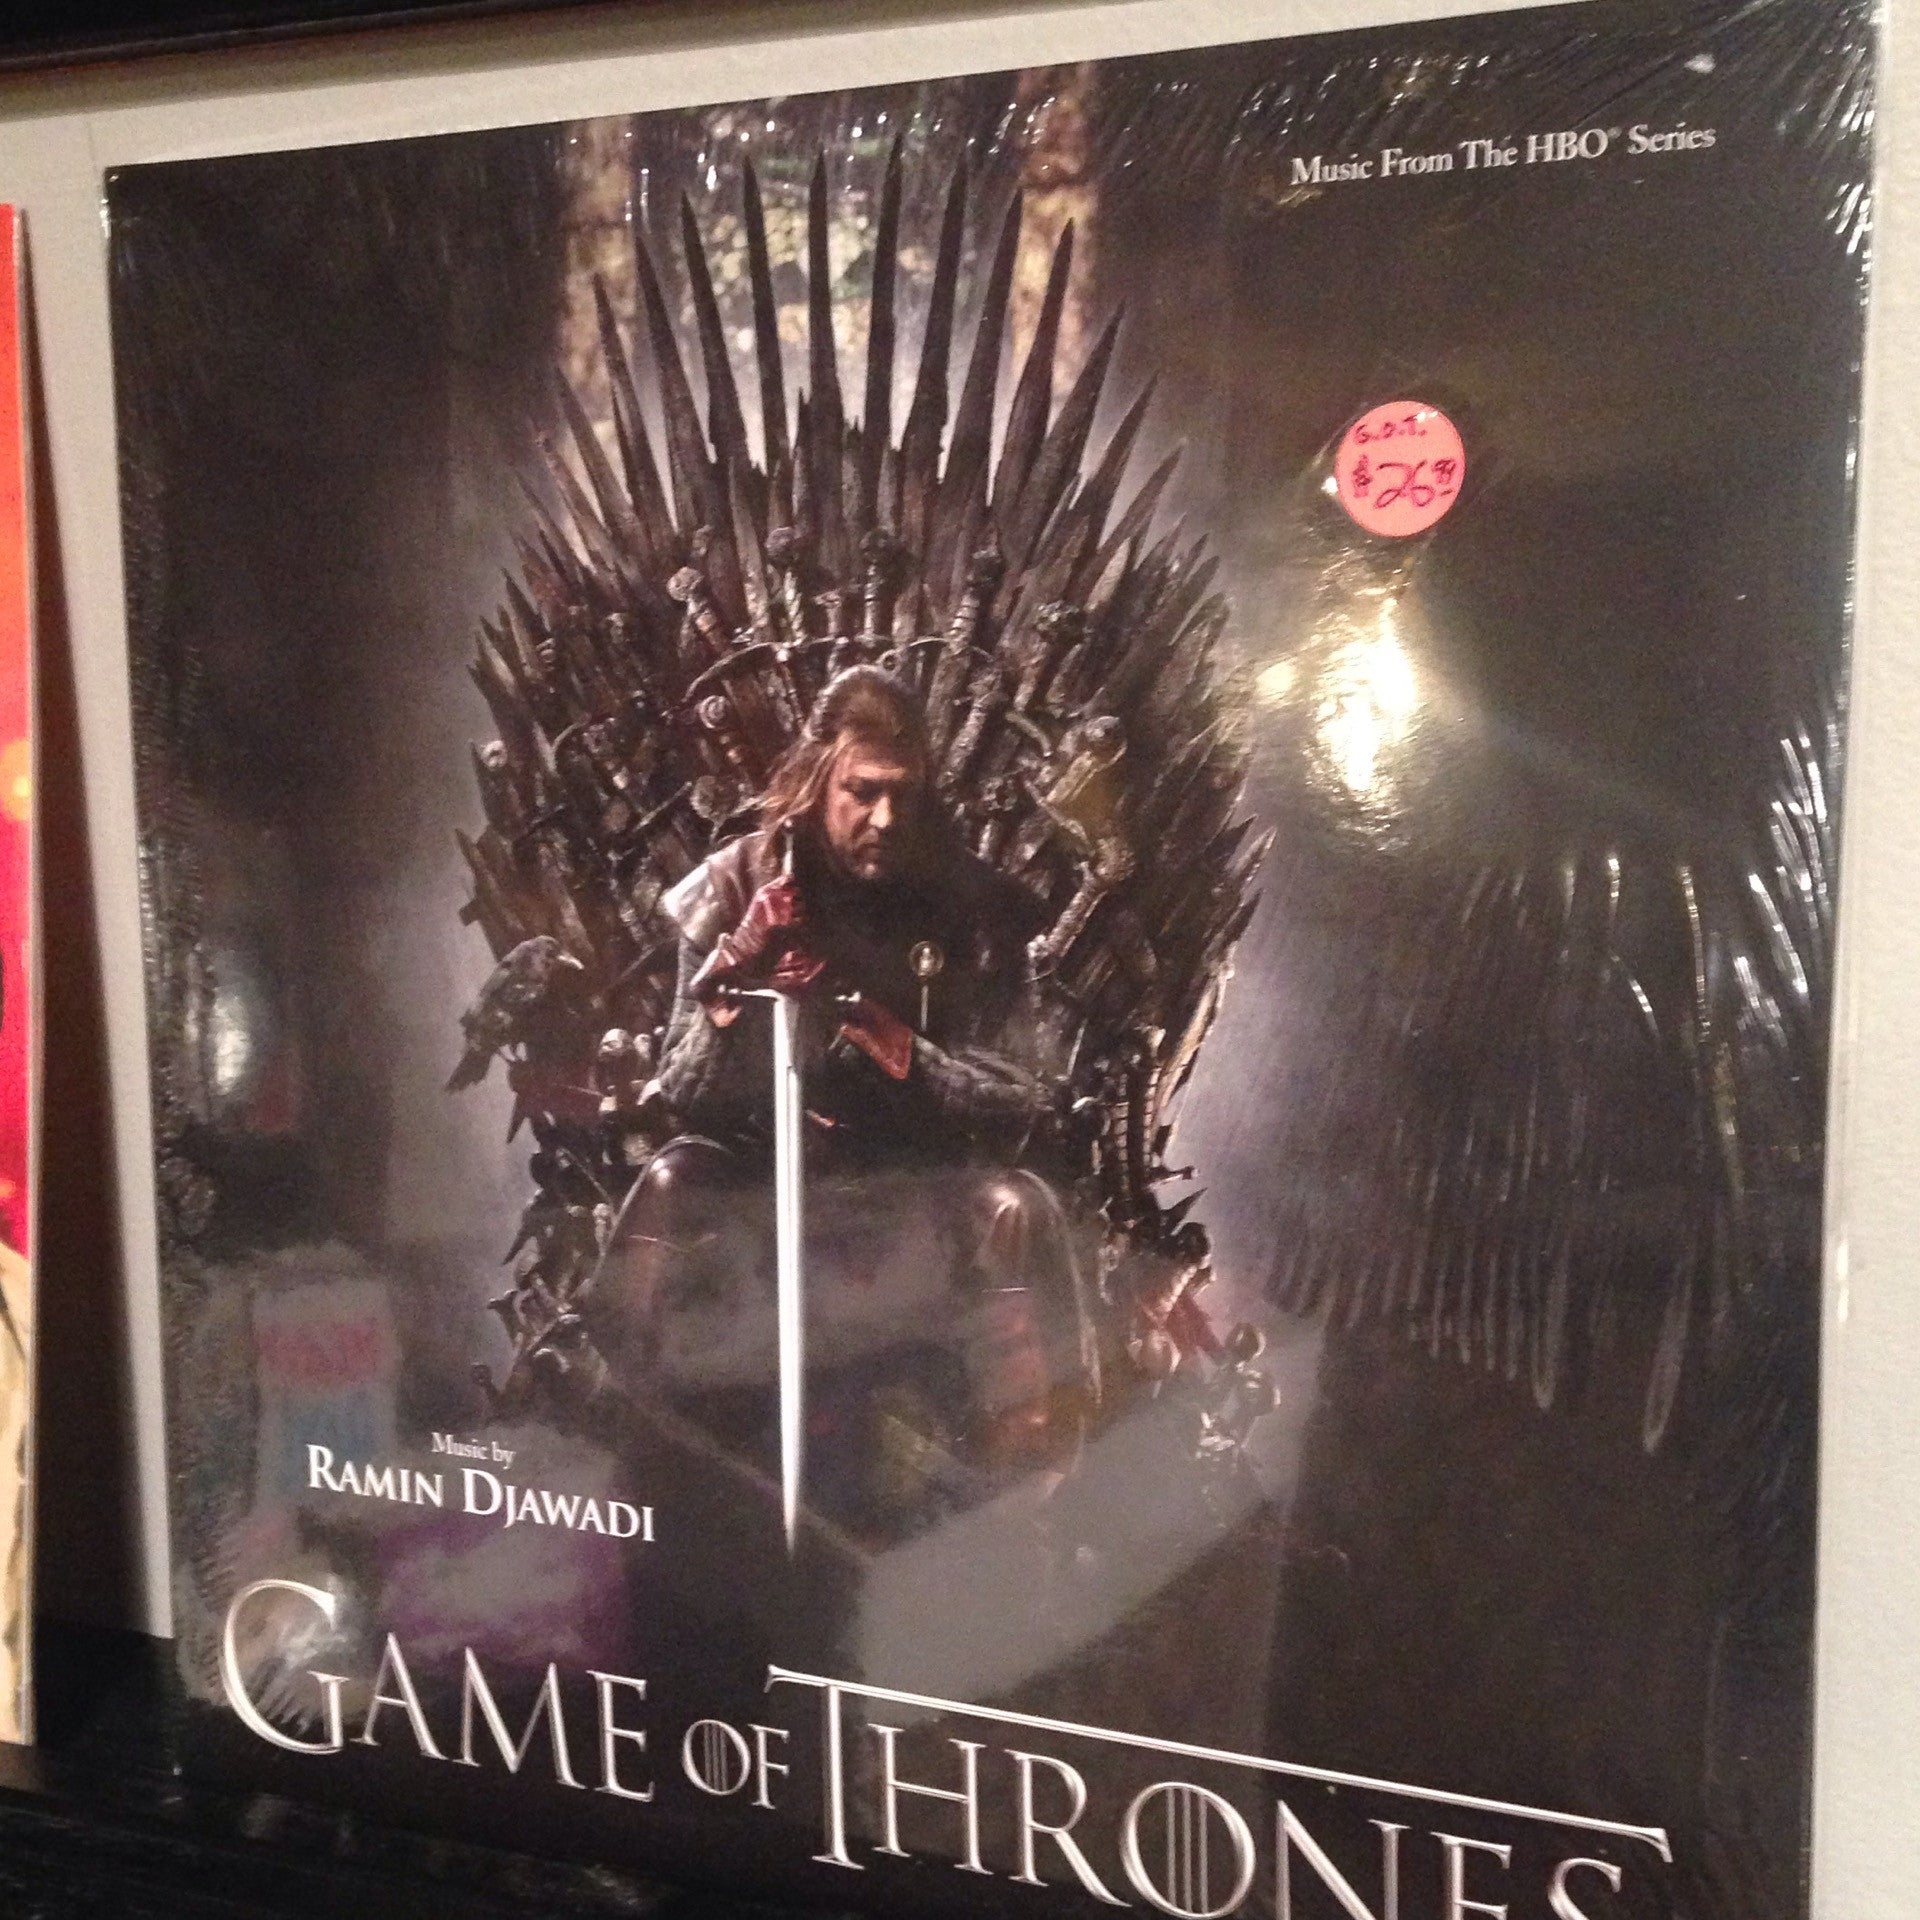 Game Of Thrones OST LP